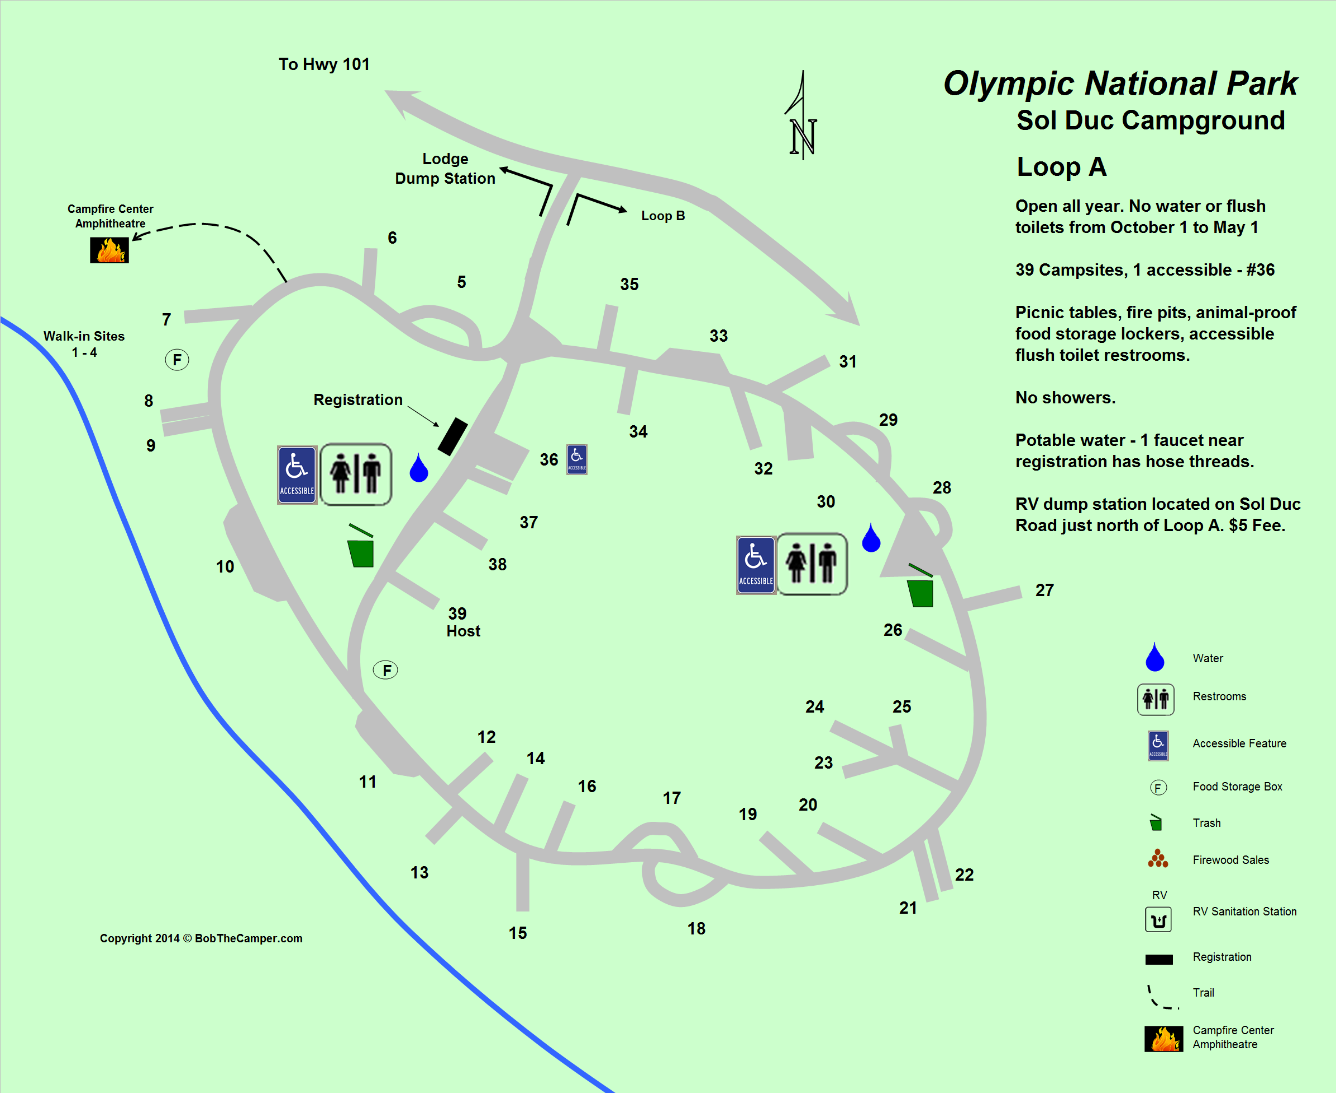 Sol Duc Campground Loop A Map - Olympic National Park